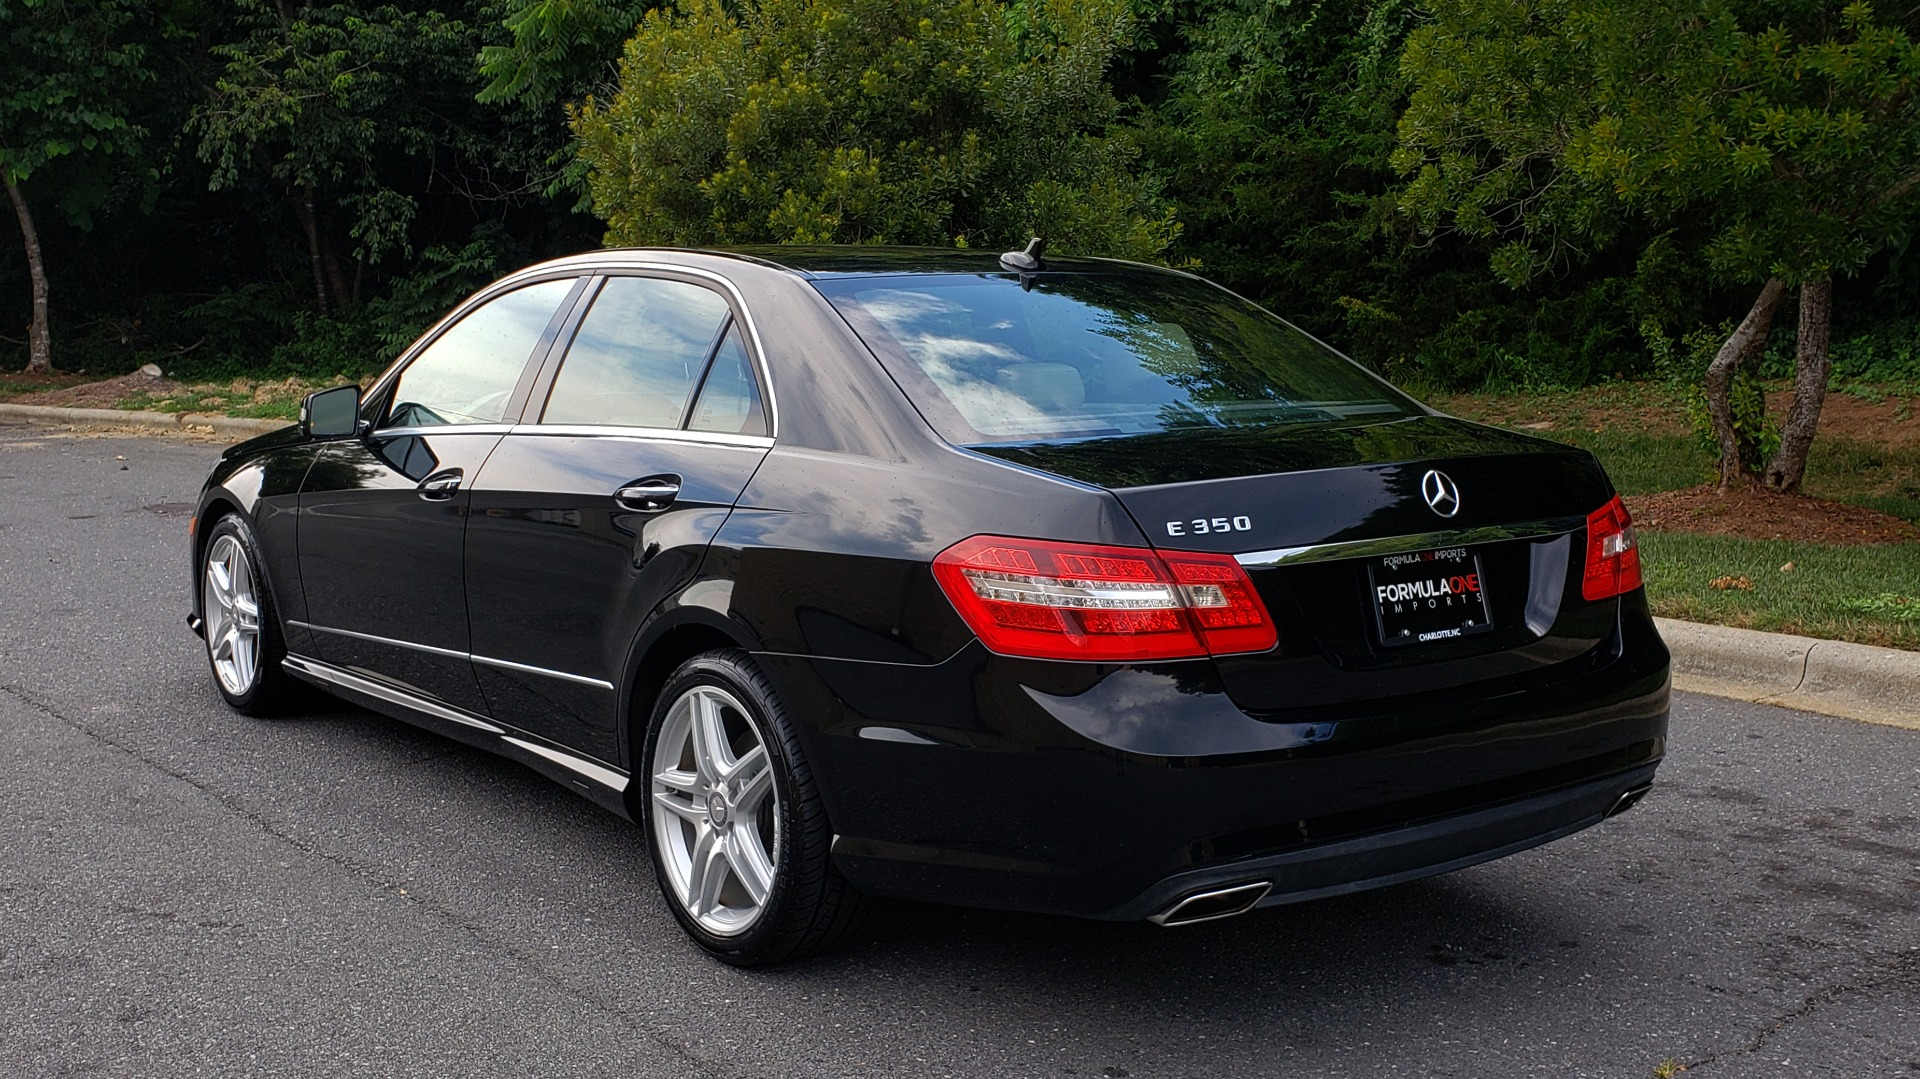 Used 2013 Mercedes-Benz E-CLASS E 350 SPORT / PREM PKG / NAV / SUNROOF / LANE TRACKING / BSA for sale $17,995 at Formula Imports in Charlotte NC 28227 3